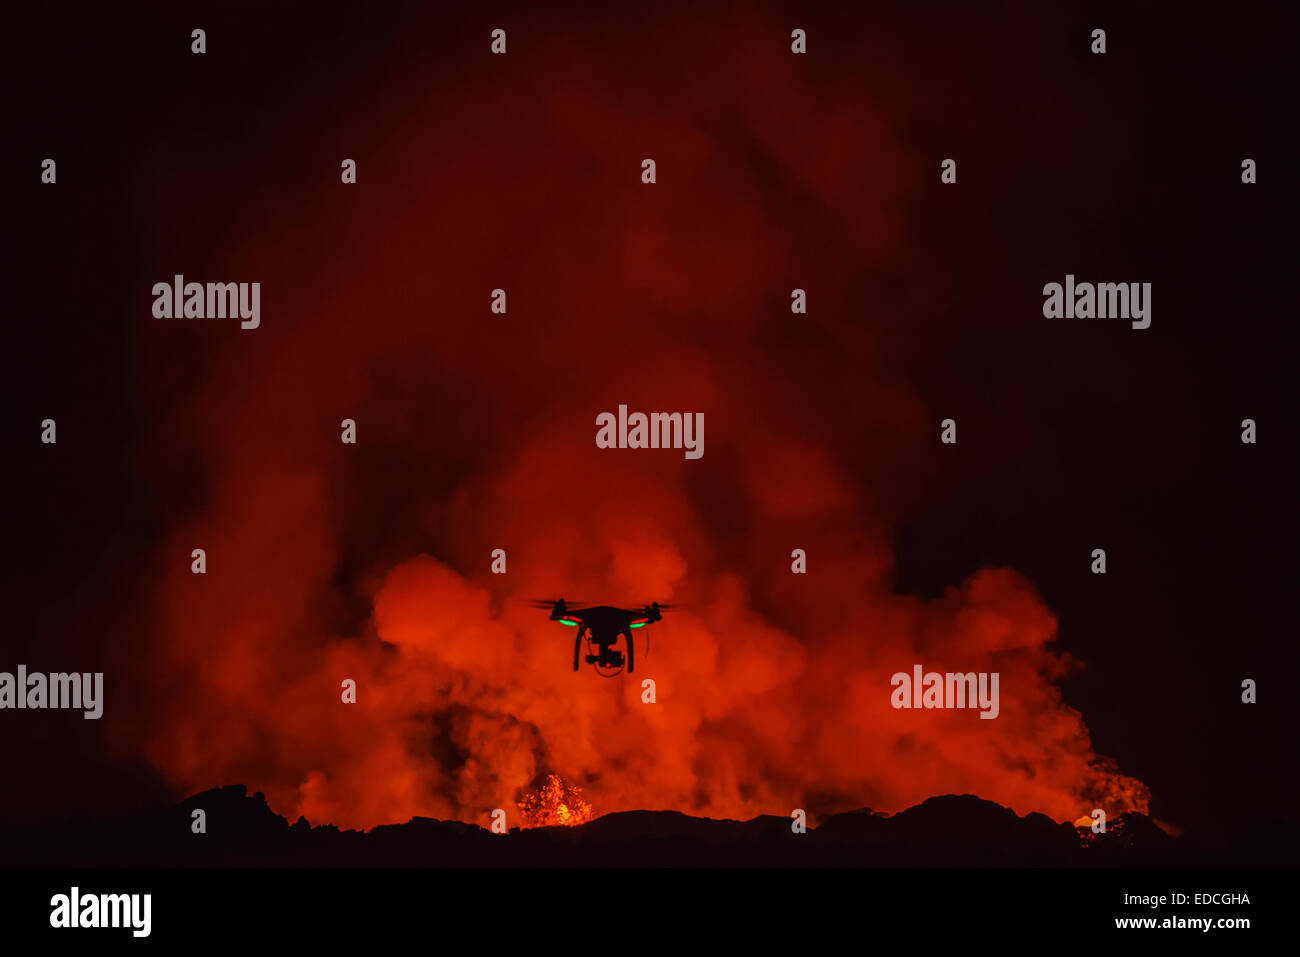 Radio controlled Drone with Camera. Eruption at Holuhraun Fissure, Bardarbunga Volcano, Iceland - Stock Image